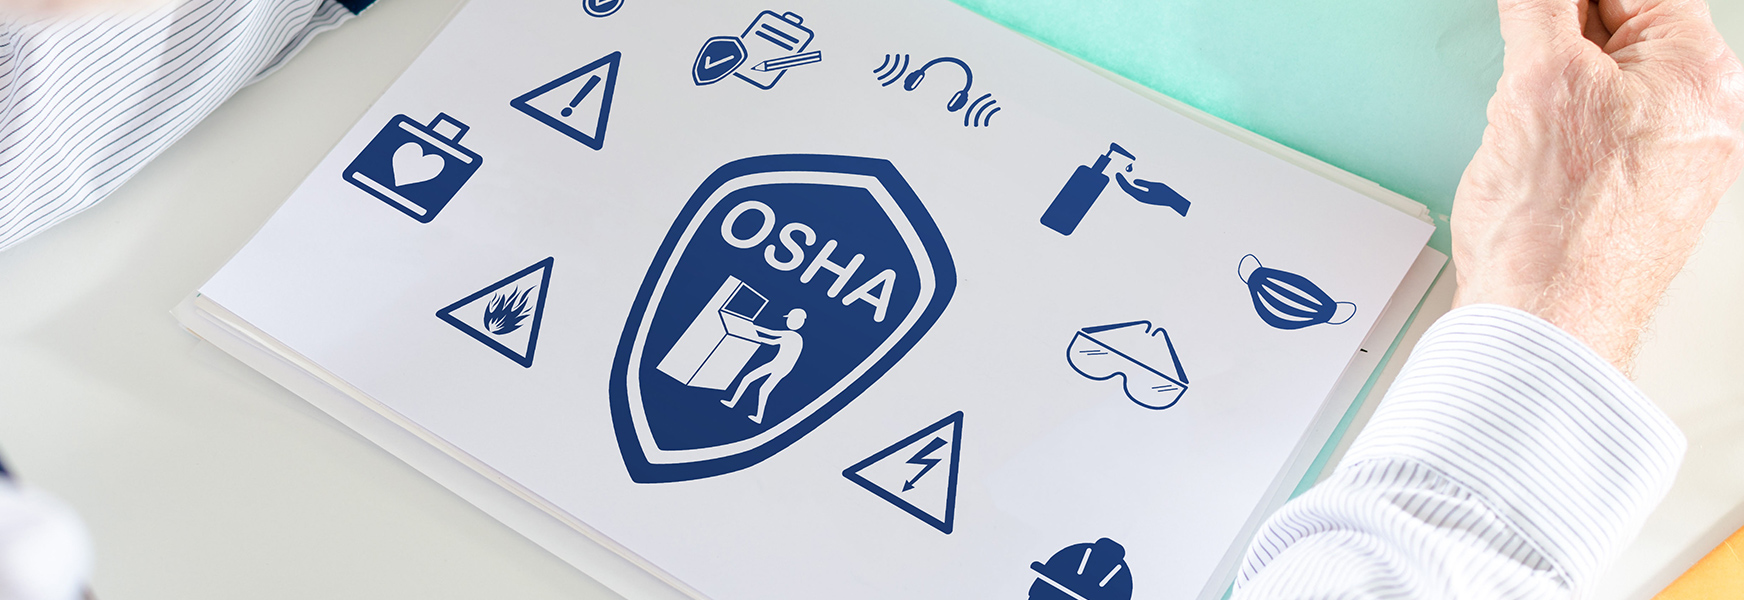 OSHA Safety Binder